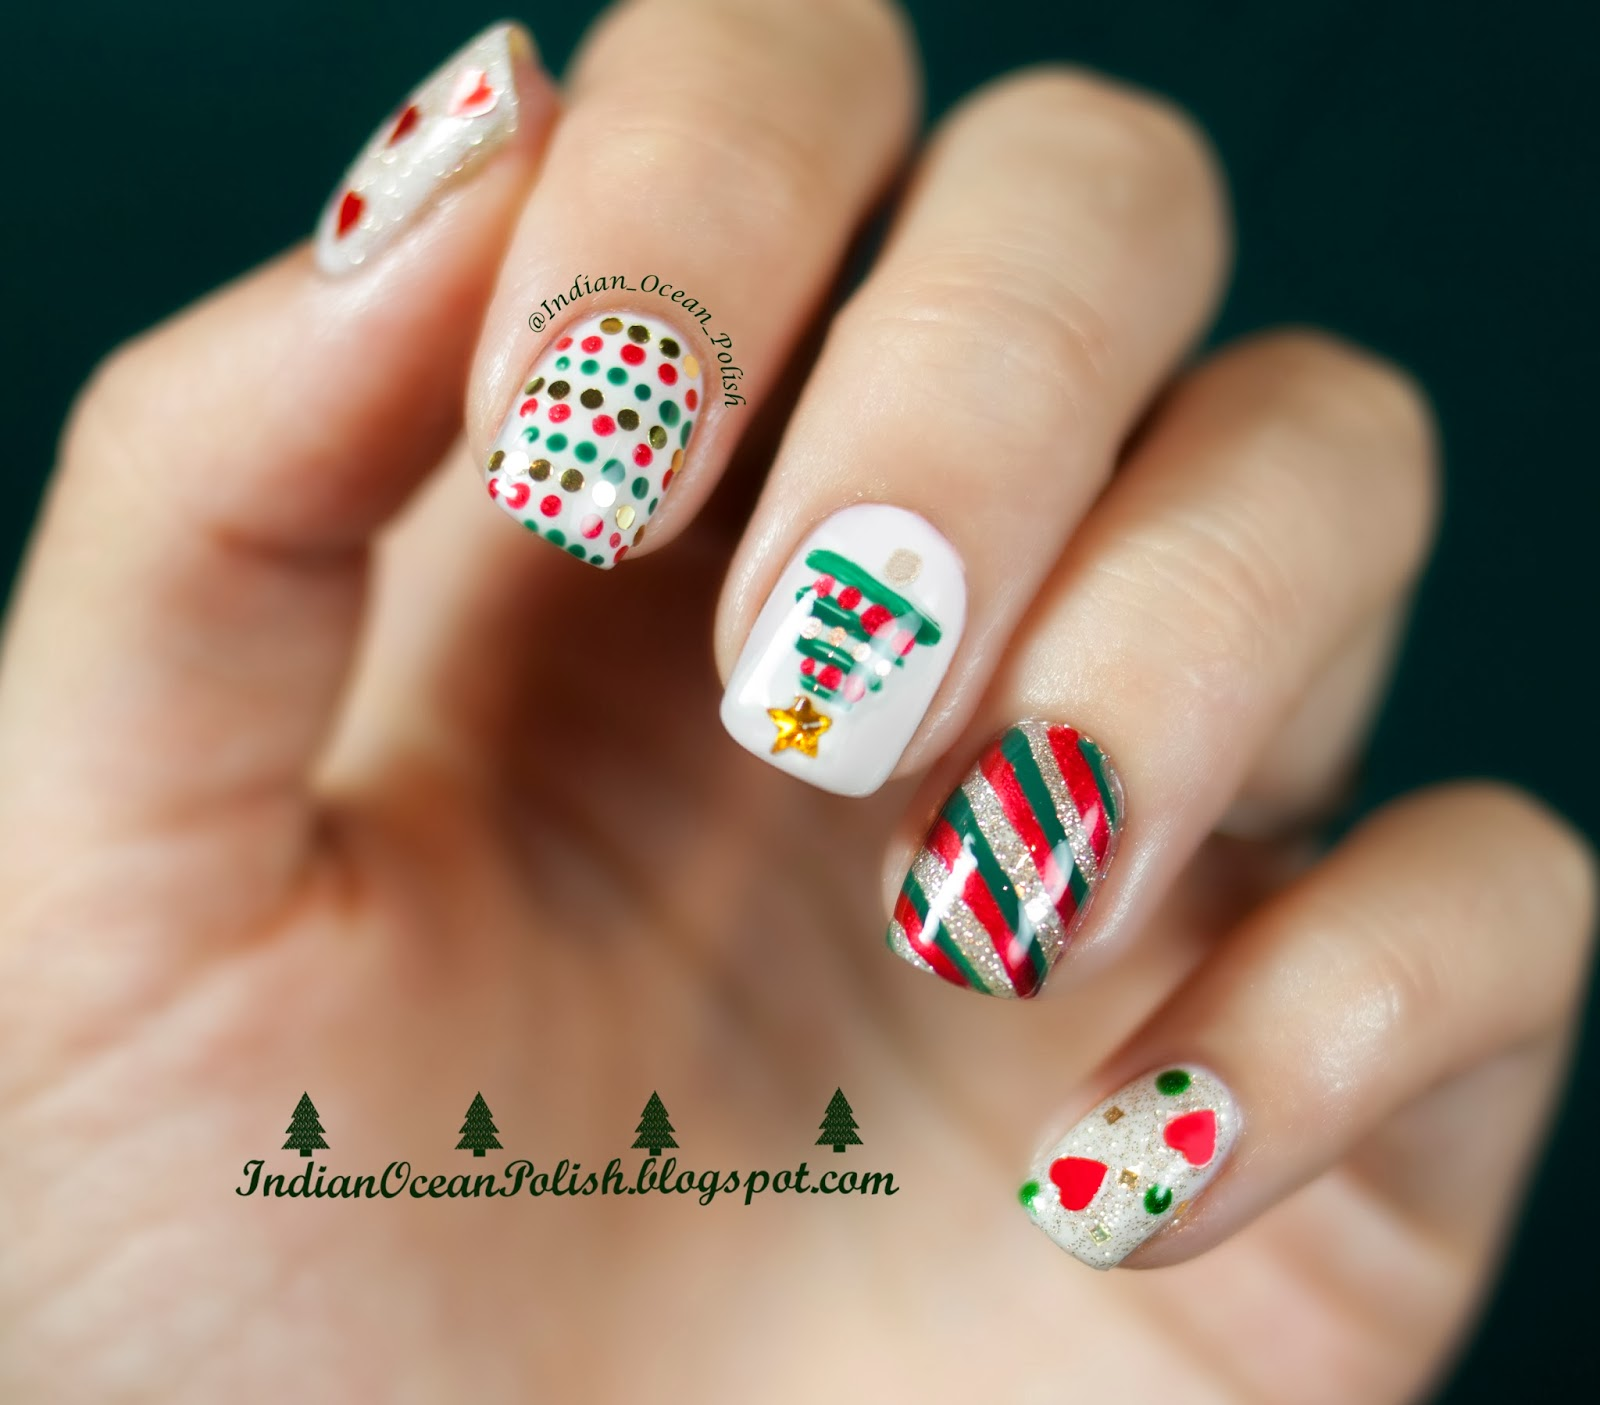 Indian ocean polish christmas 2013 nail art ideas simple and not christmas 2013 nail art ideas simple and not so simple prinsesfo Gallery